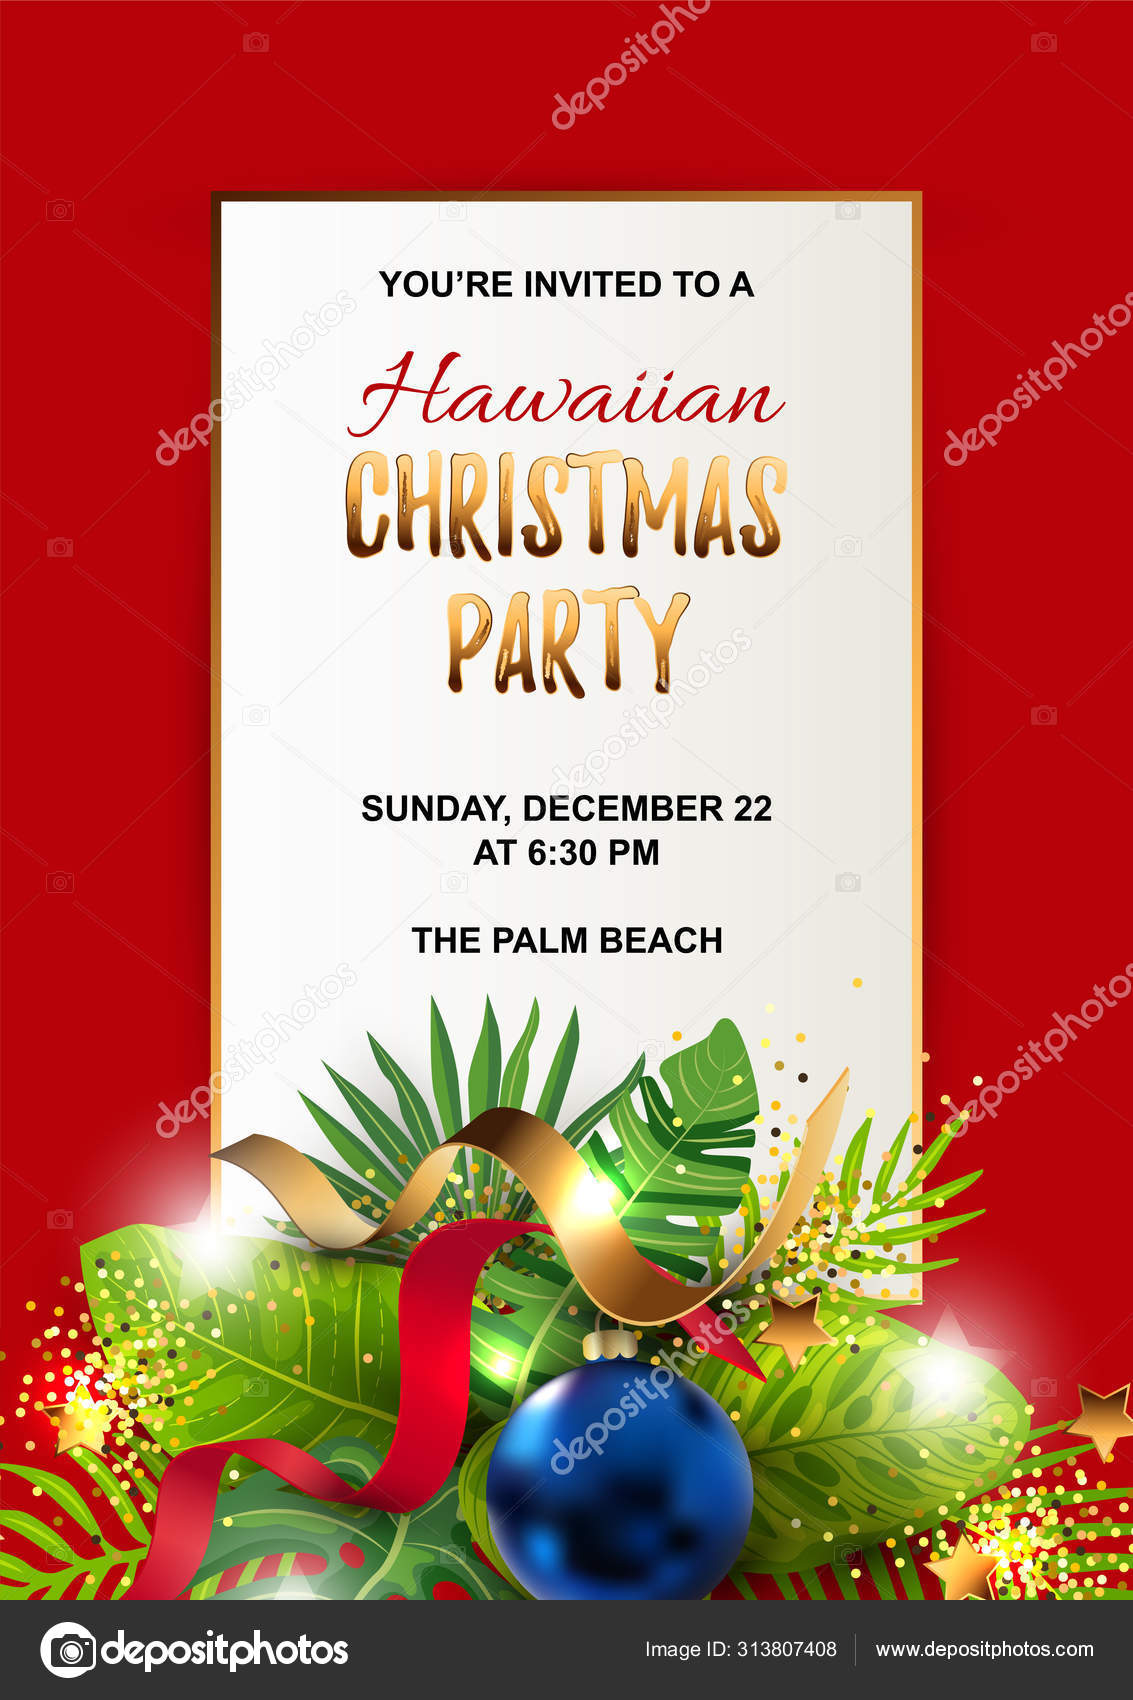 Hawaiian Christmas Party Invitation Exotic Tropical Leaves